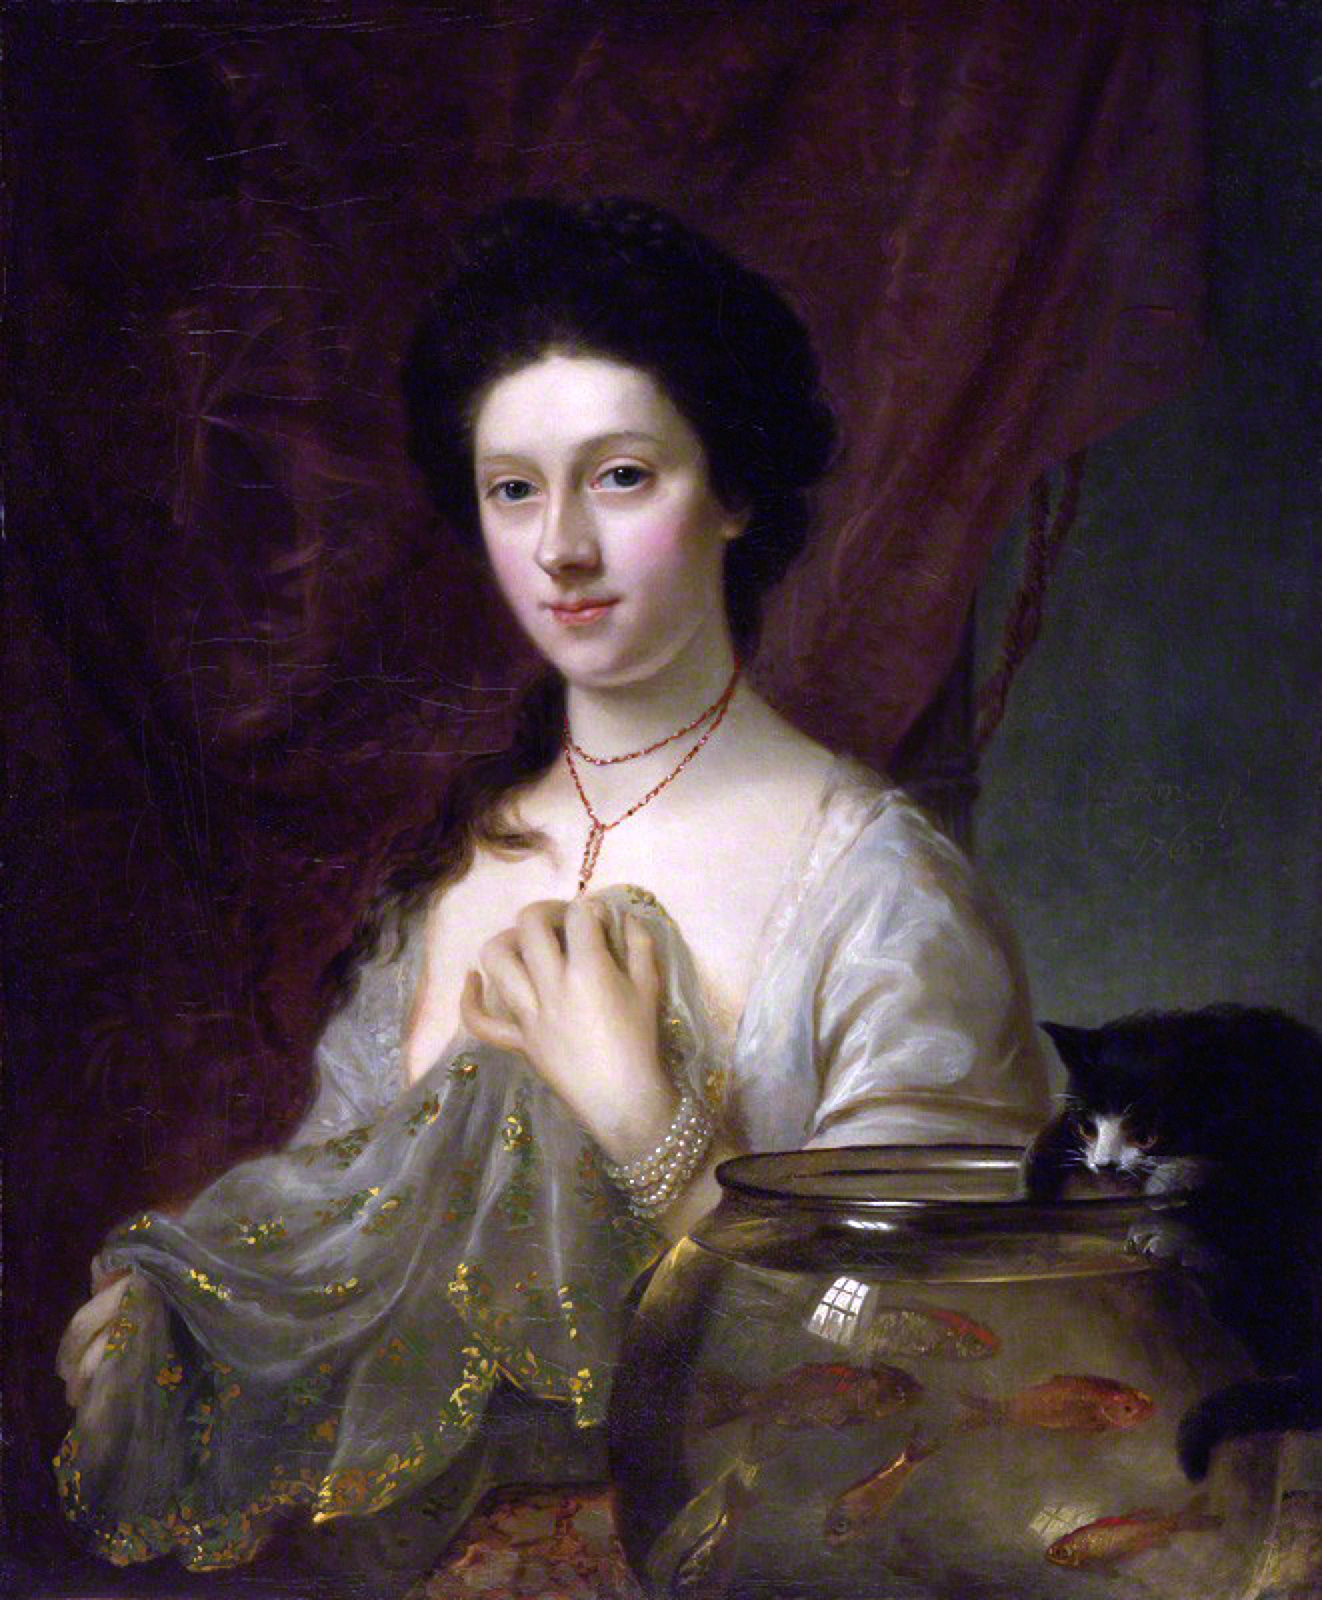 https://i0.wp.com/upload.wikimedia.org/wikipedia/commons/0/08/Nathaniel_Hone,_Catherine_Maria_%27%27Kitty%27%27_Fisher.jpg